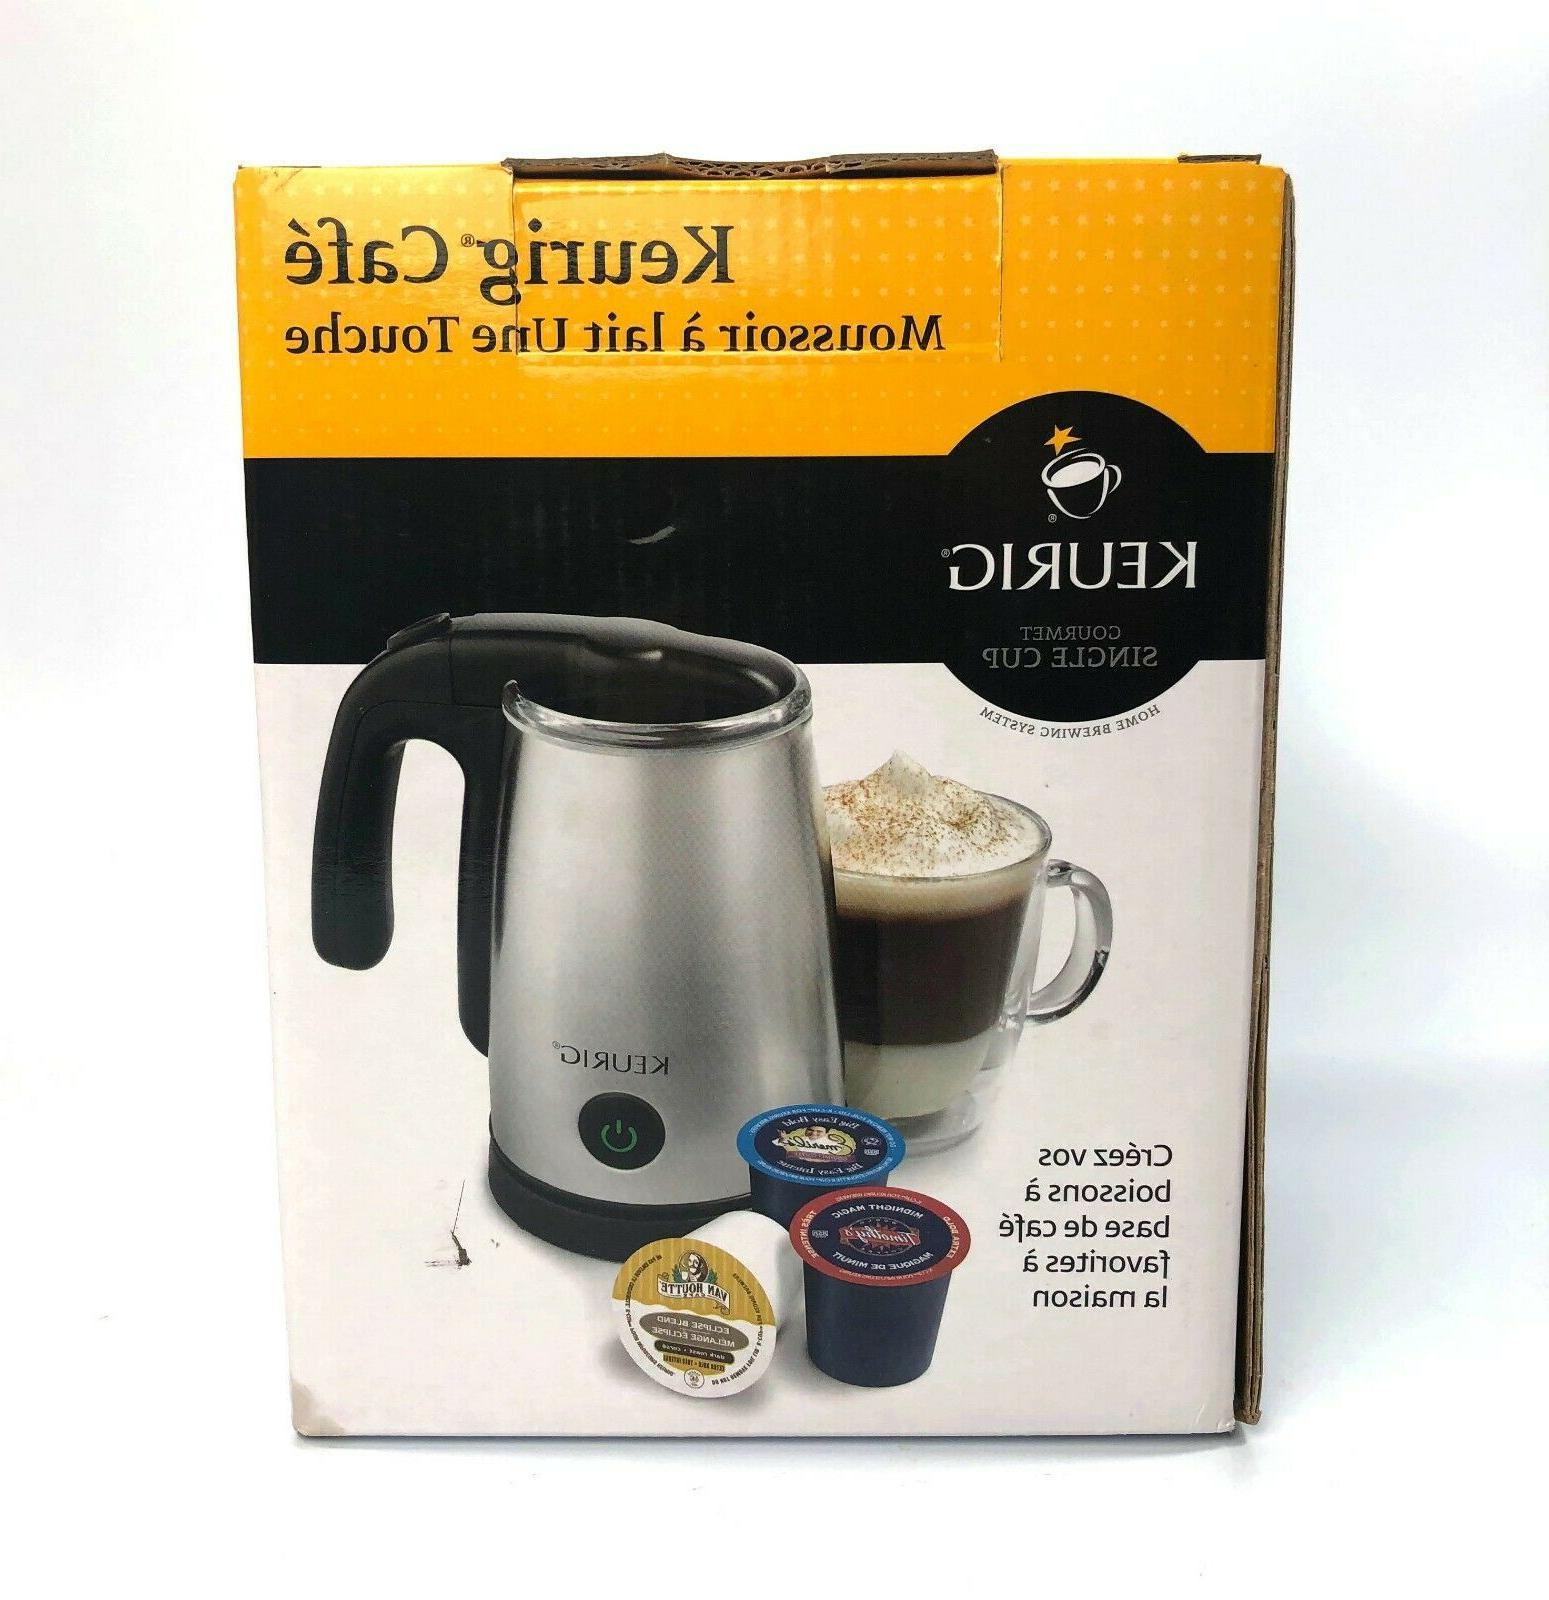 Keurig One-Touch Frother Steel